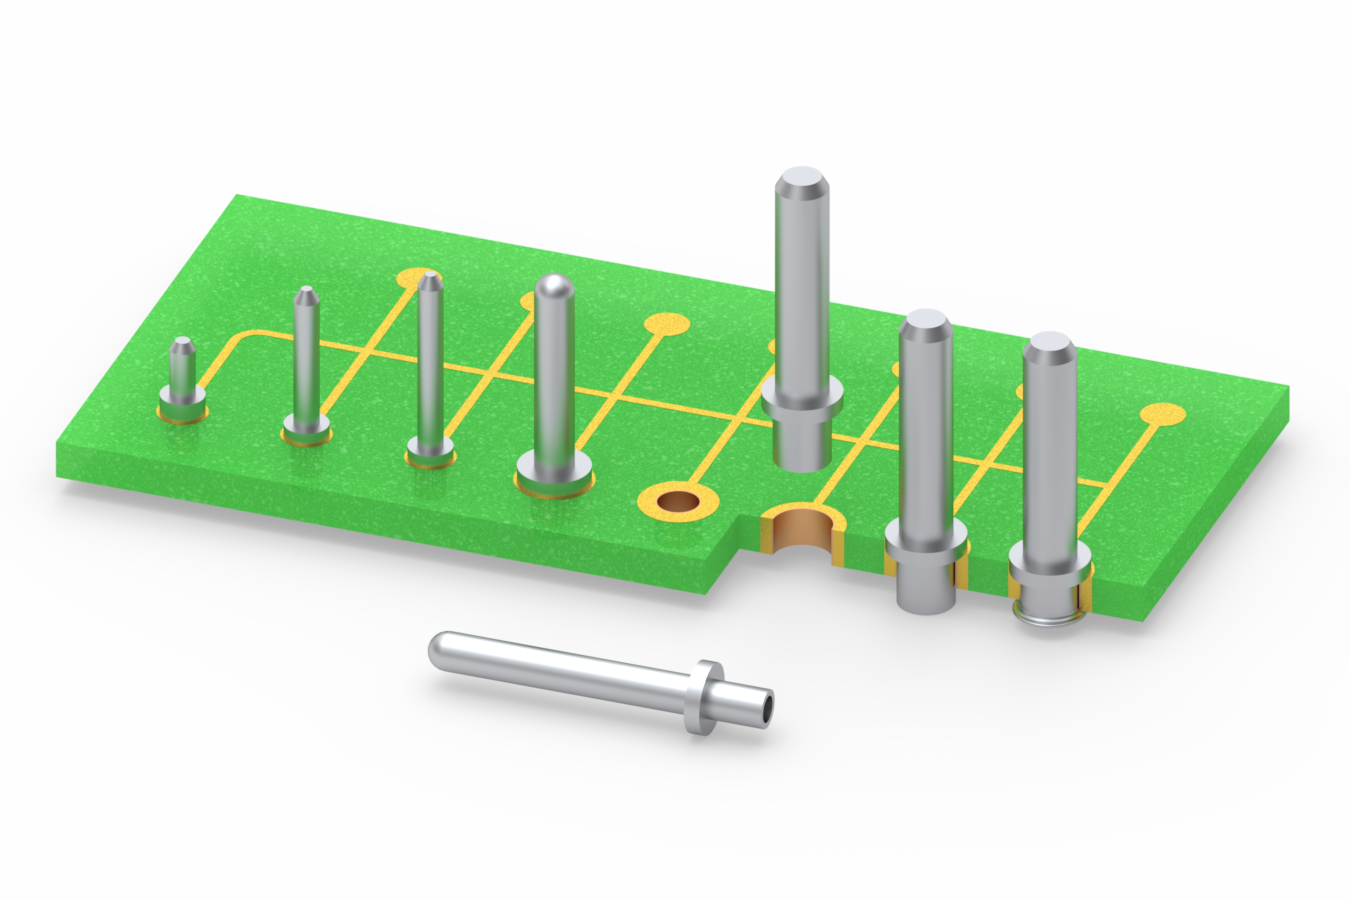 Swage mount PCB pins suit interconnect applications